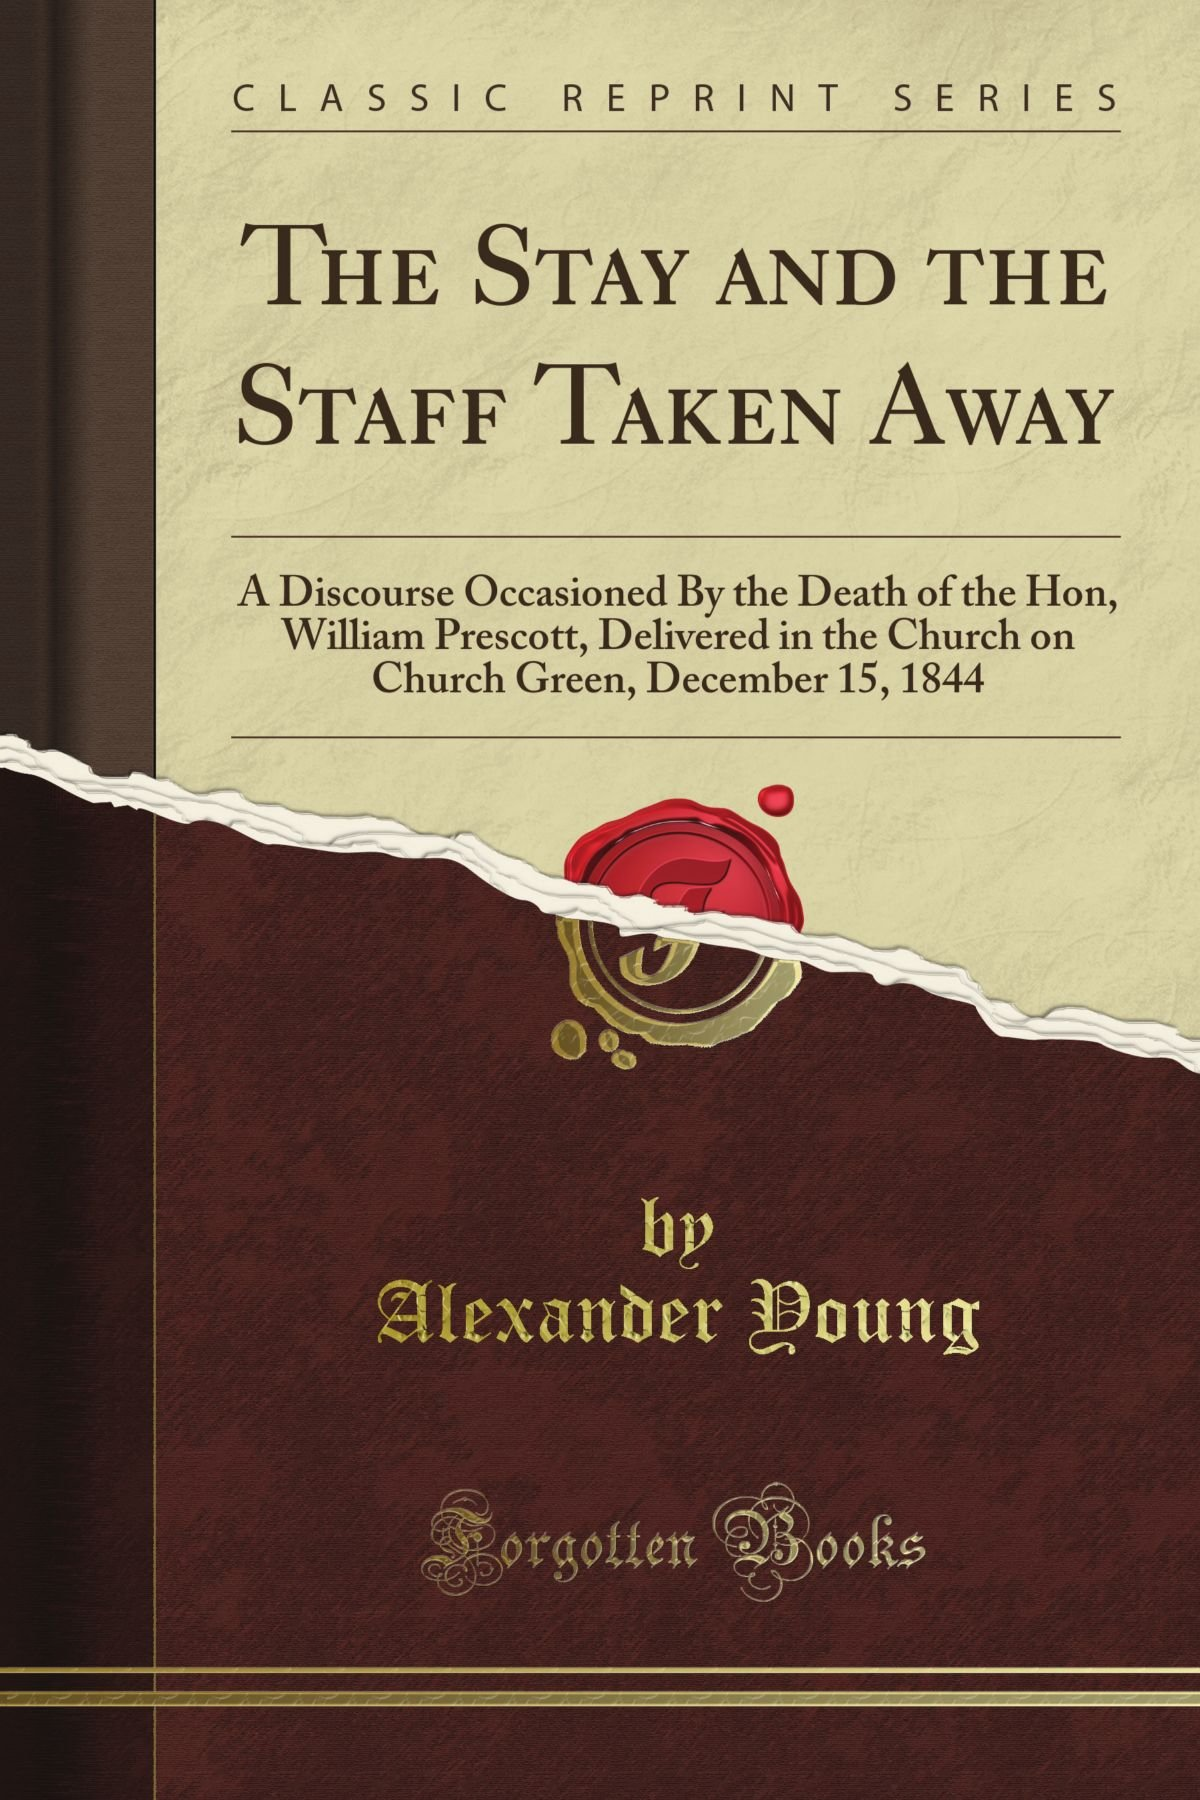 Download The Stay and the Staff Taken Away: A Discourse Occasioned By the Death of the Hon, William Prescott, Delivered in the Church on Church Green, December 15, 1844 (Classic Reprint) pdf